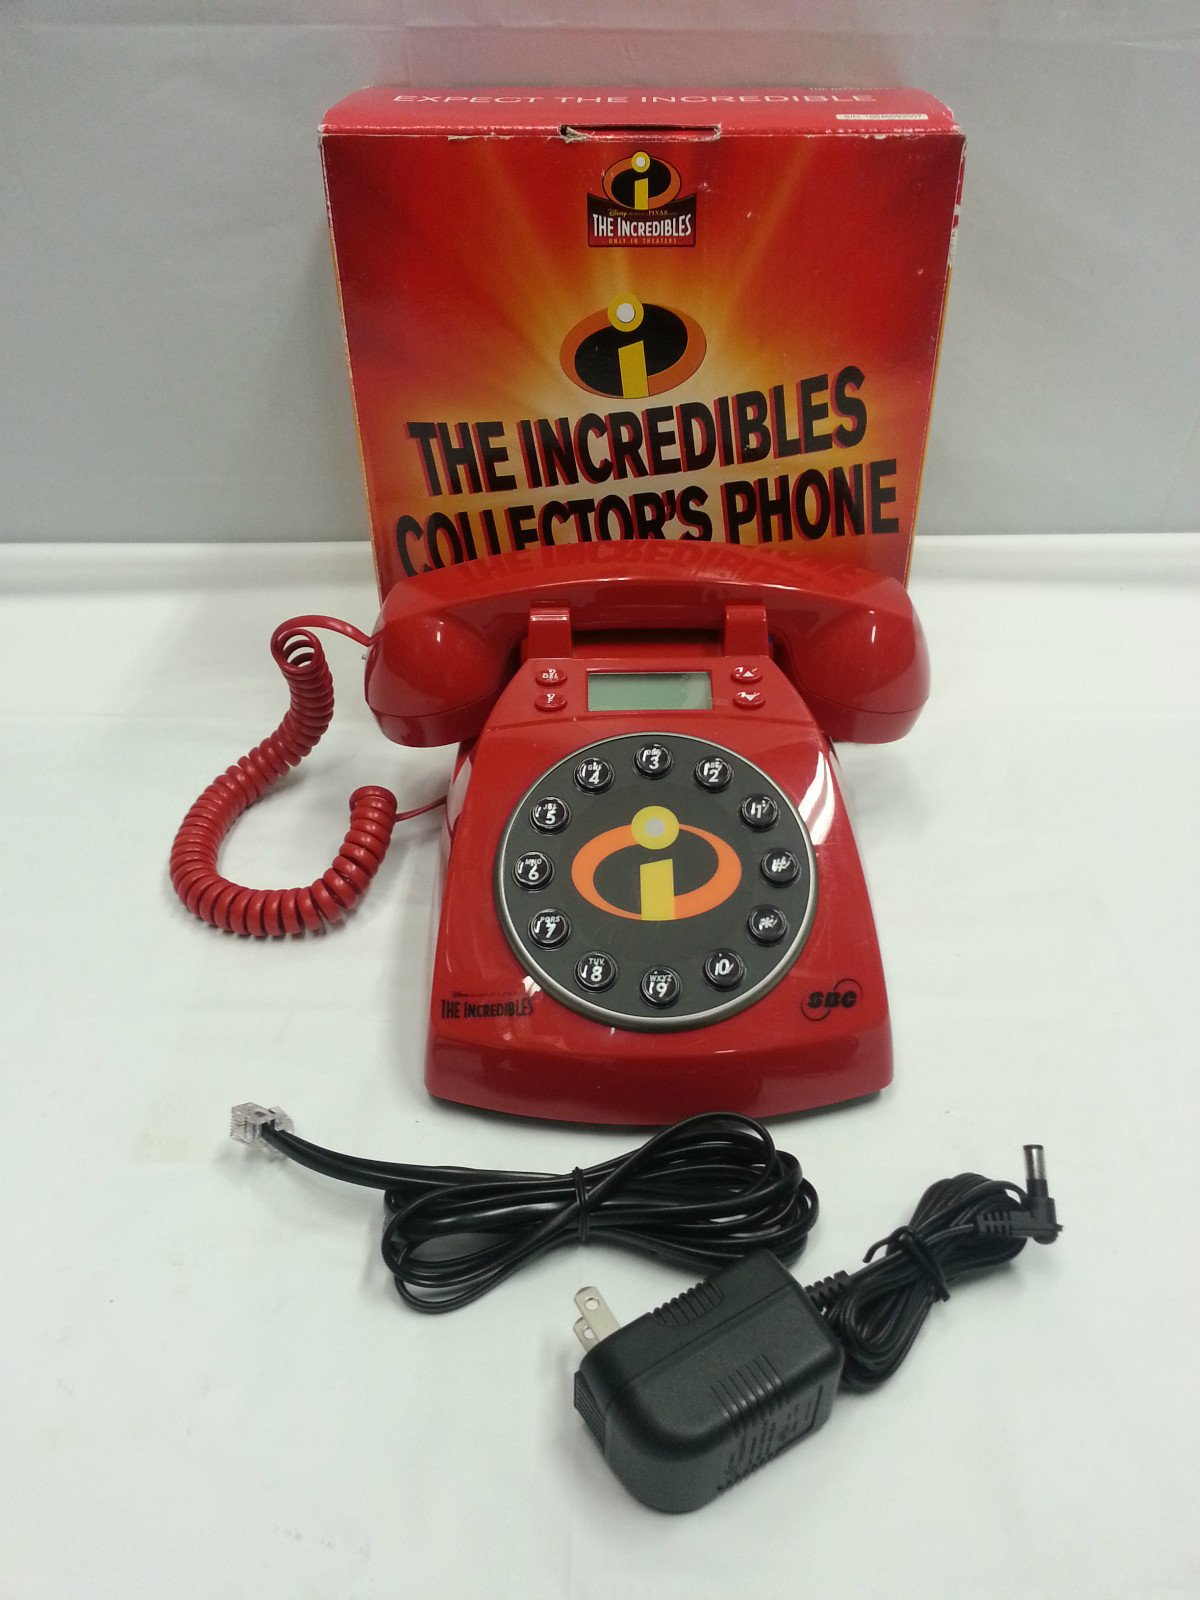 Incredibles Telephone